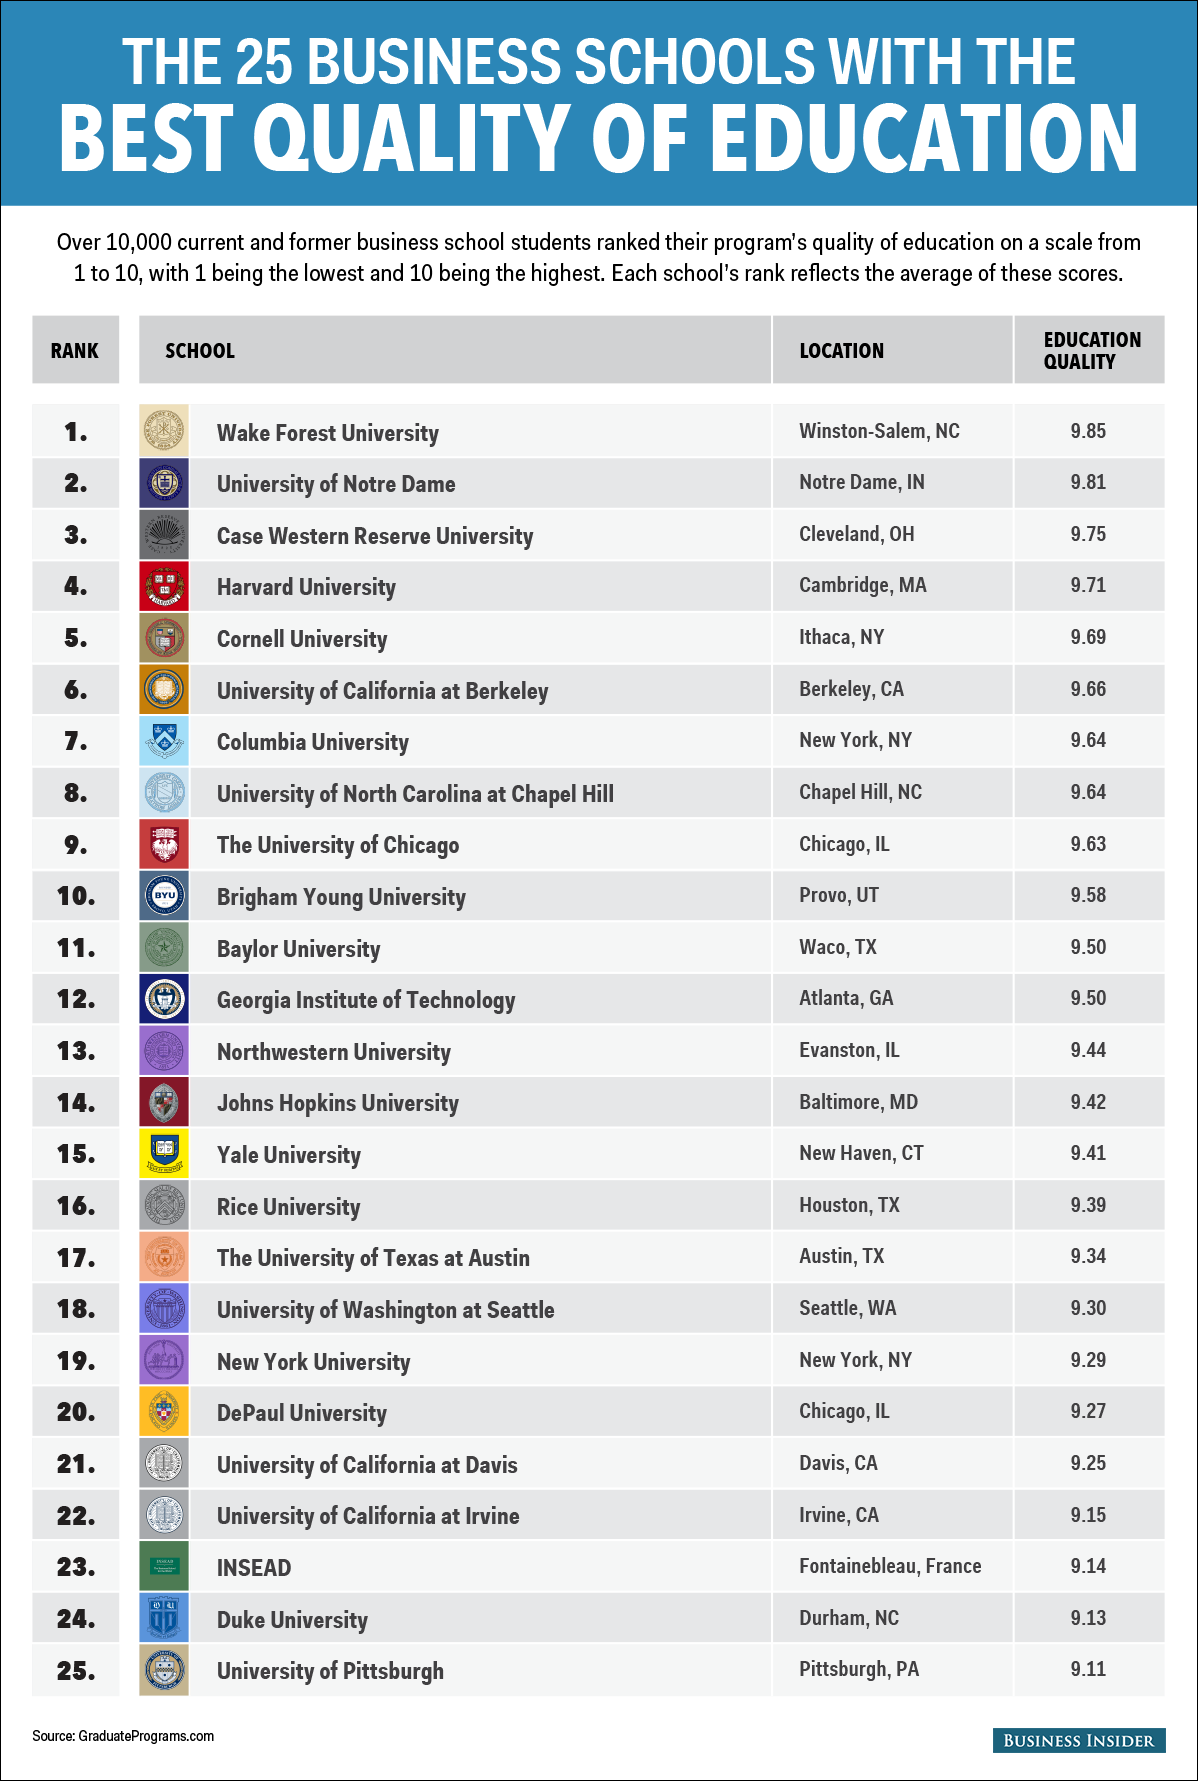 The 25 business schools that offer the best education